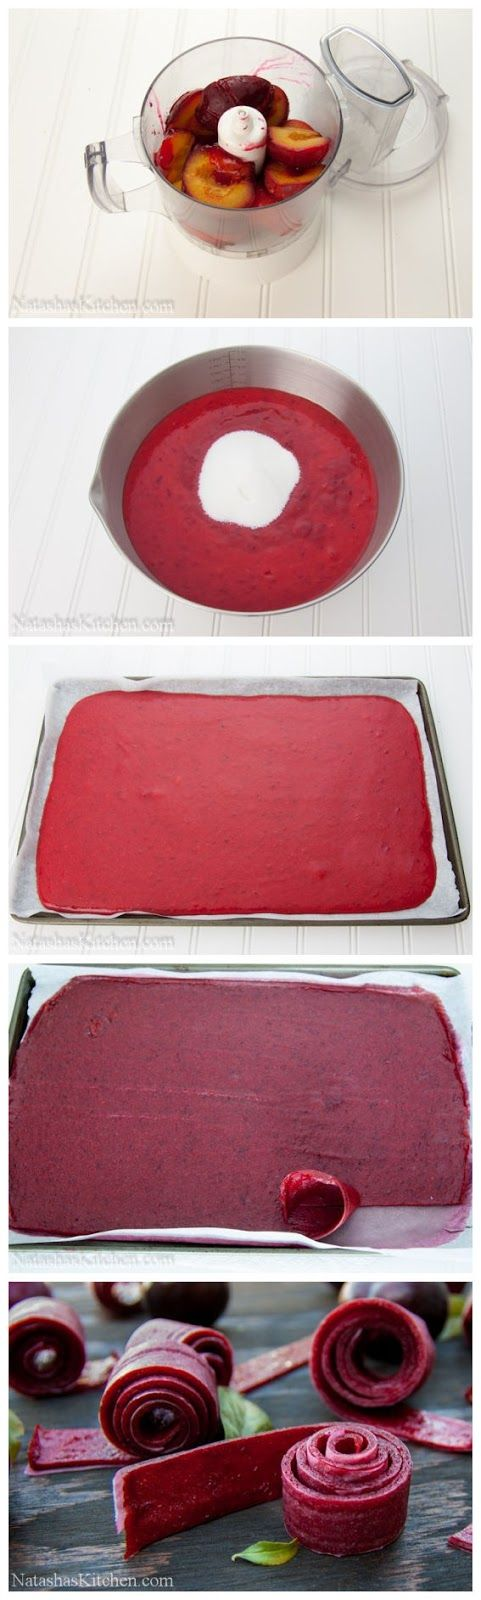 How to Make Plum Fruit Leather, sweet since I have a bunch of left over plums from my plum cravings!